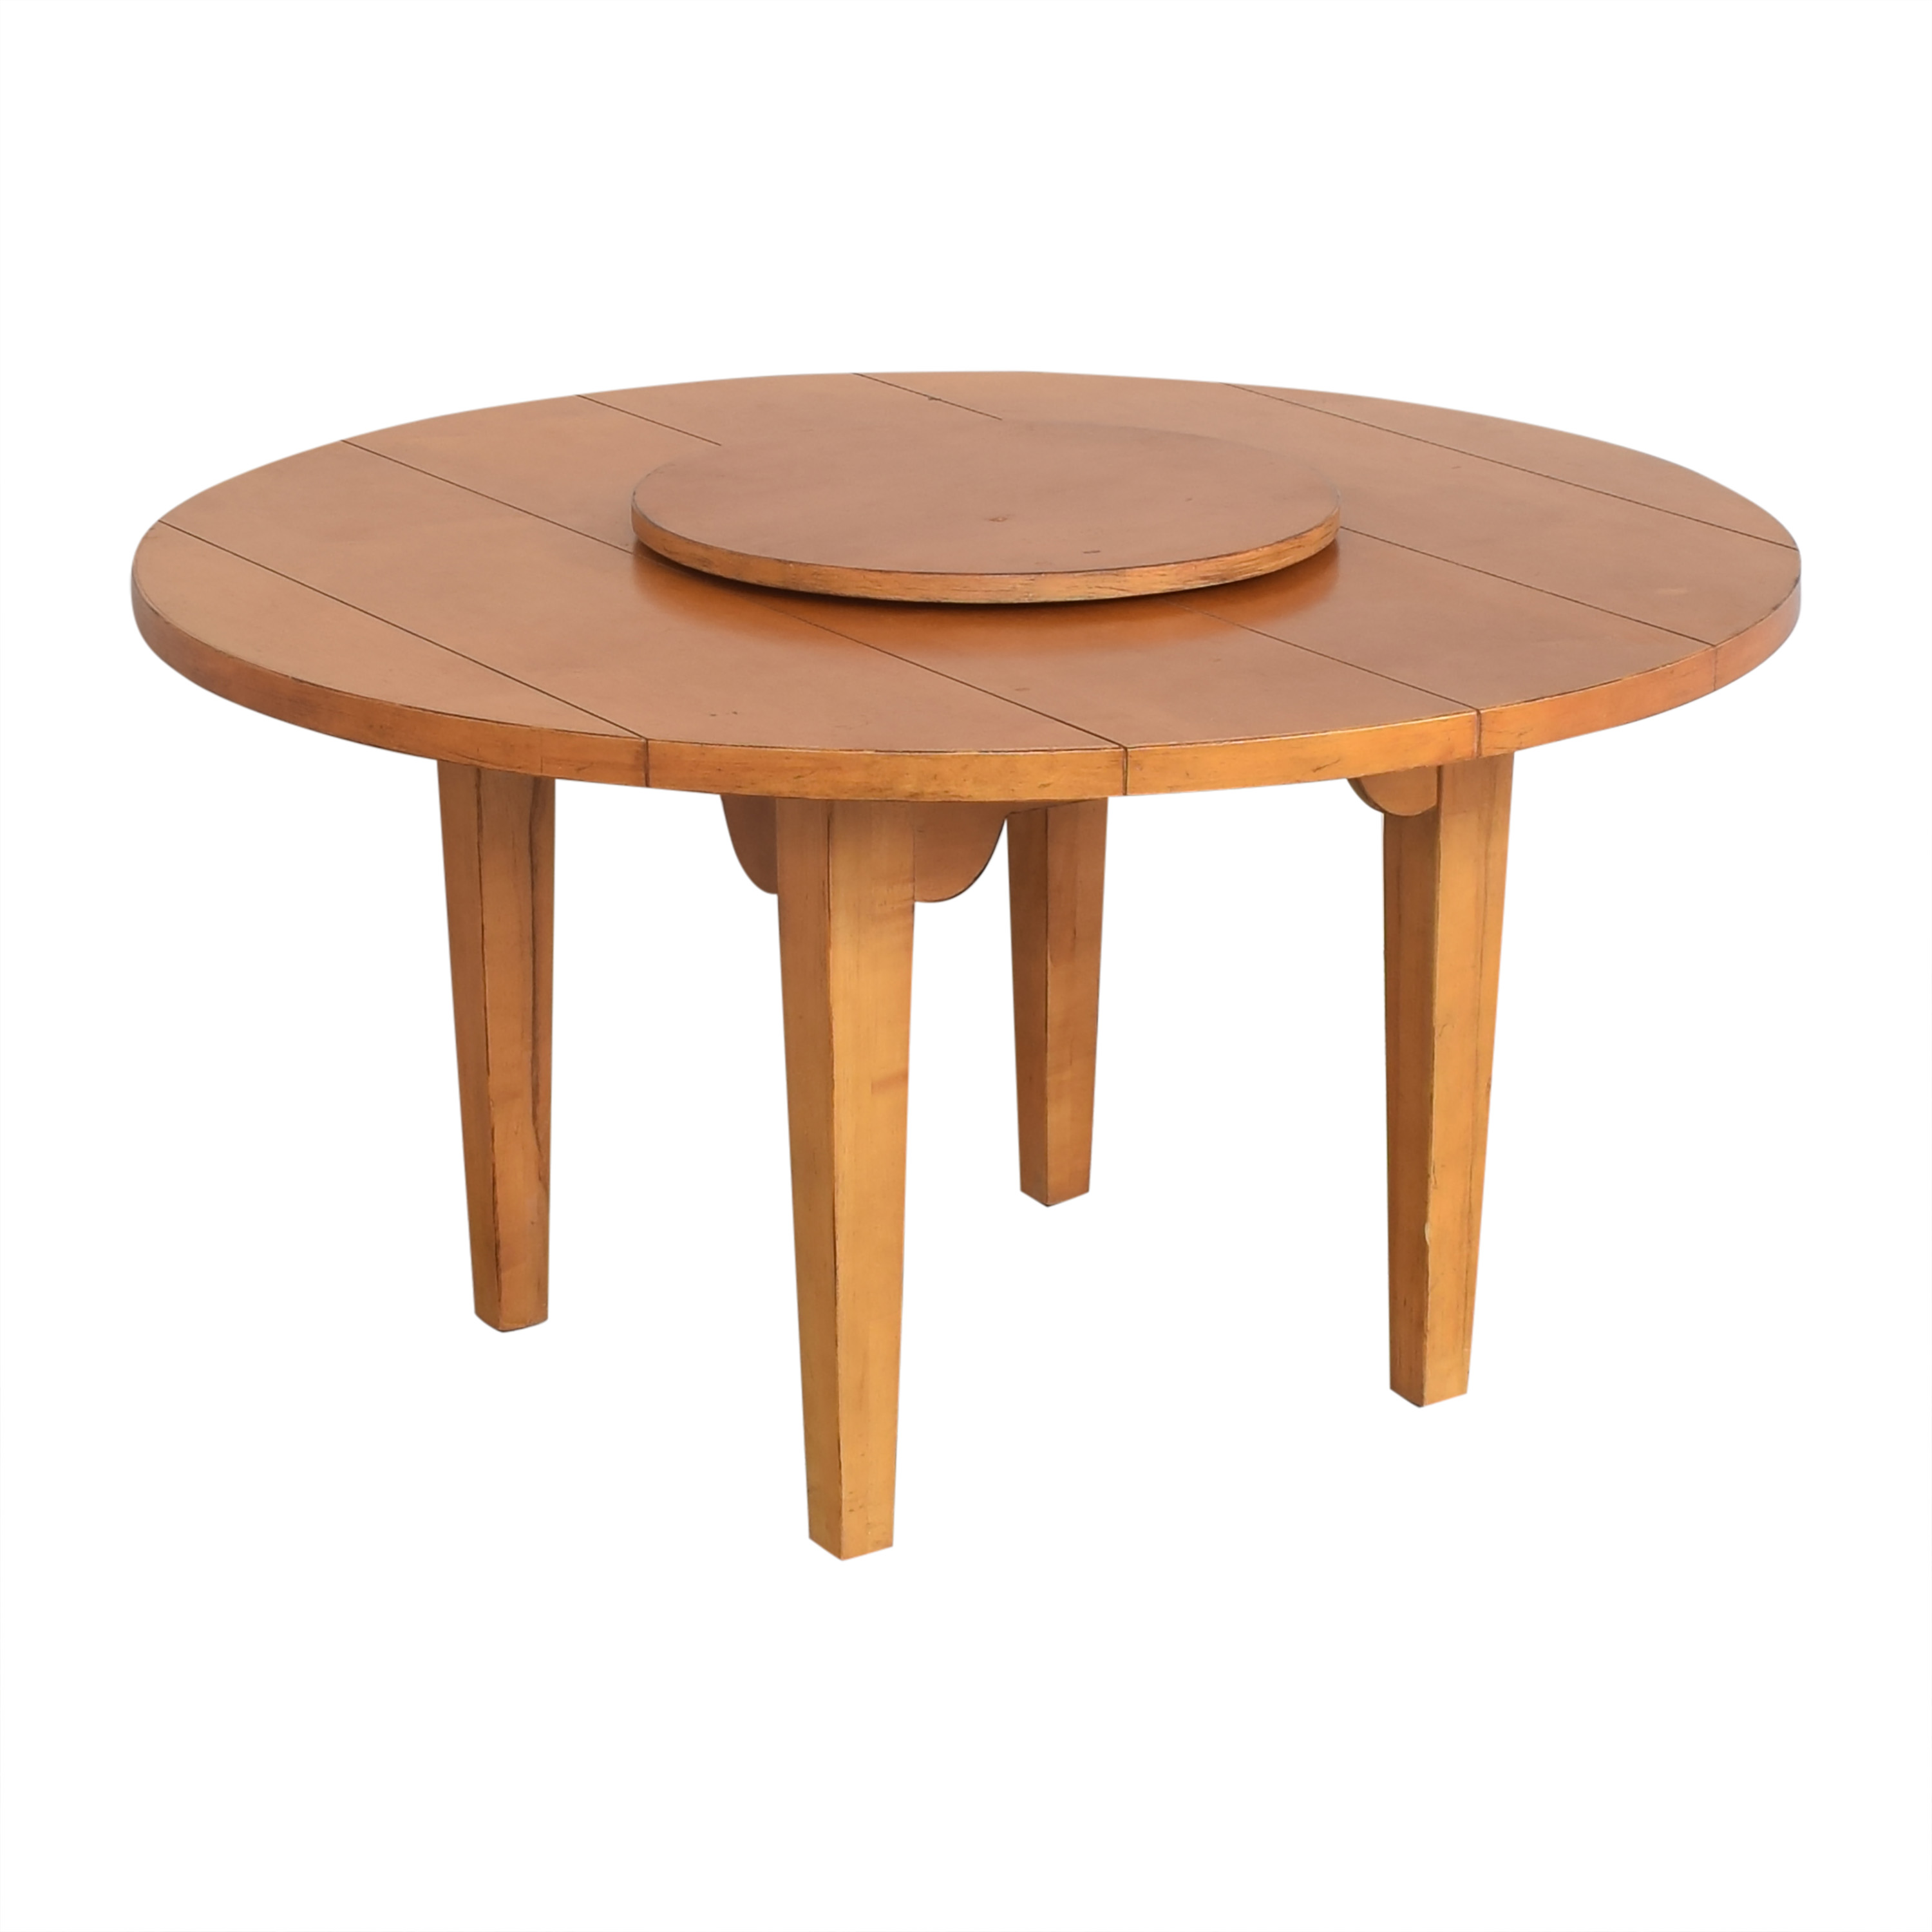 Drexel Heritage Drexel Heritage Round Dining Table with Lazy Susan pa